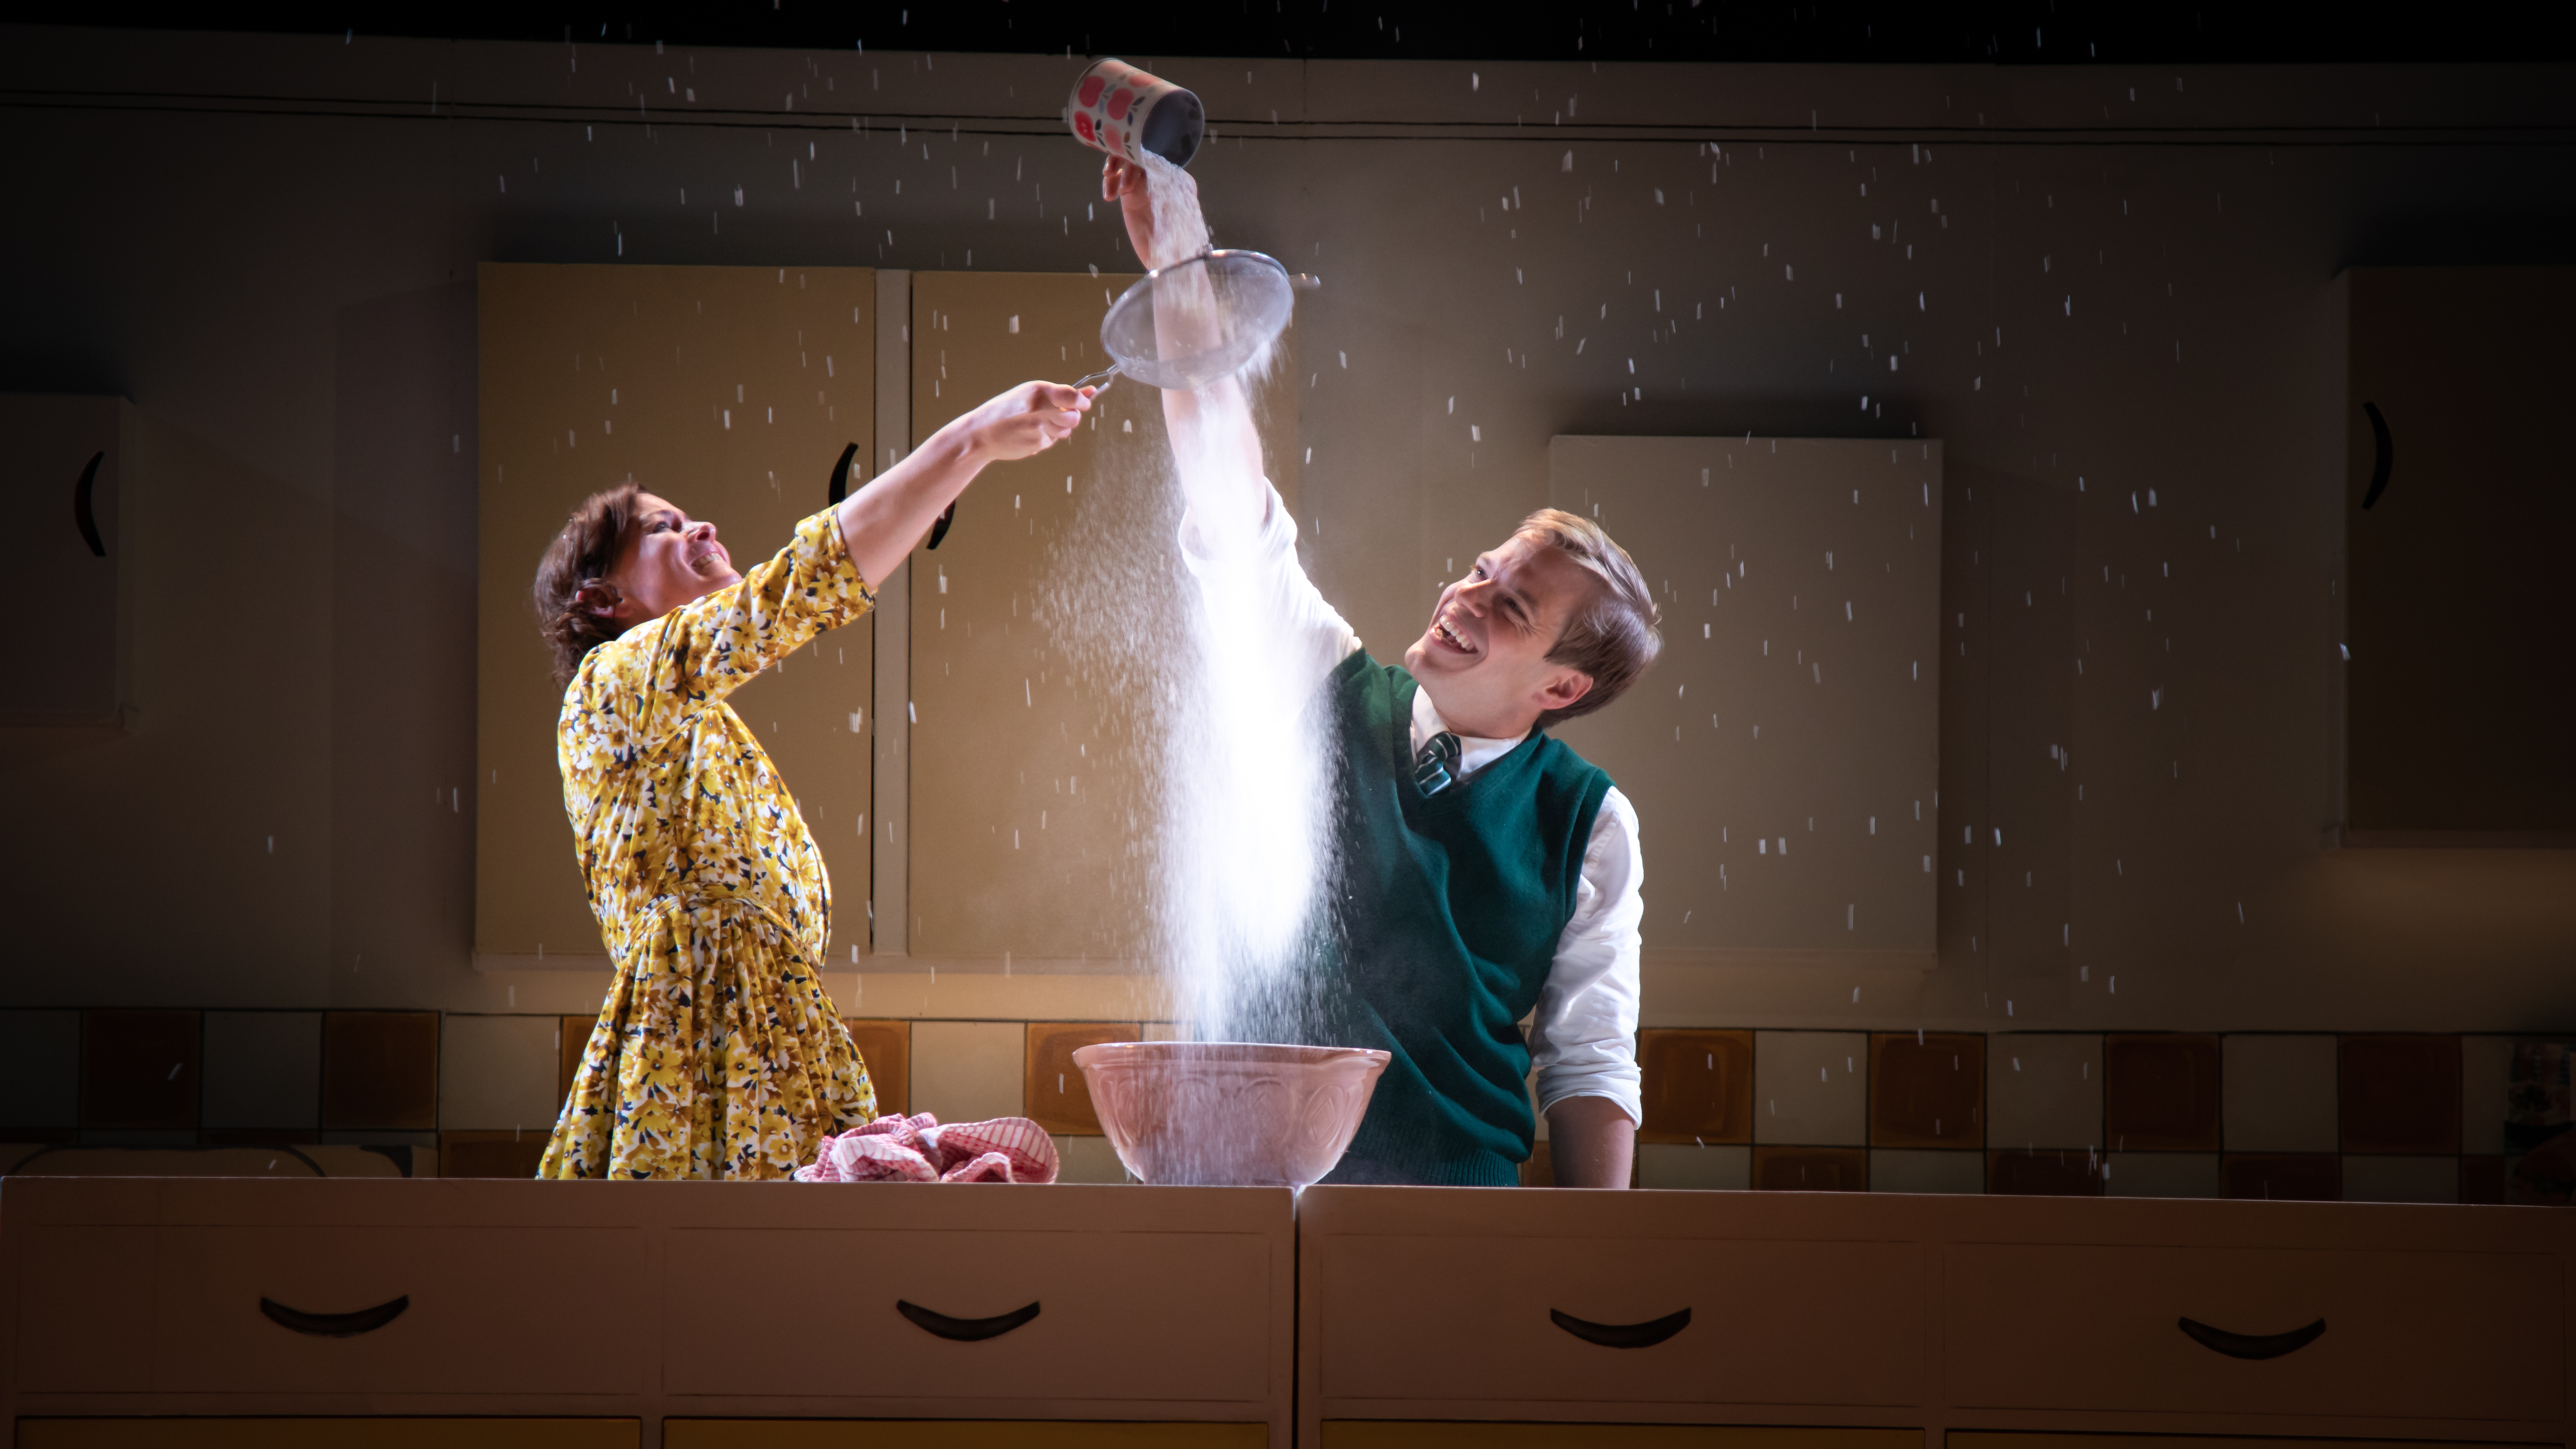 Katy Federman and Giles Cooper in Toast at Northern Stage. Design, Libby Watson; lighting design, Zoe Spurr. Photo: Piers Foley.